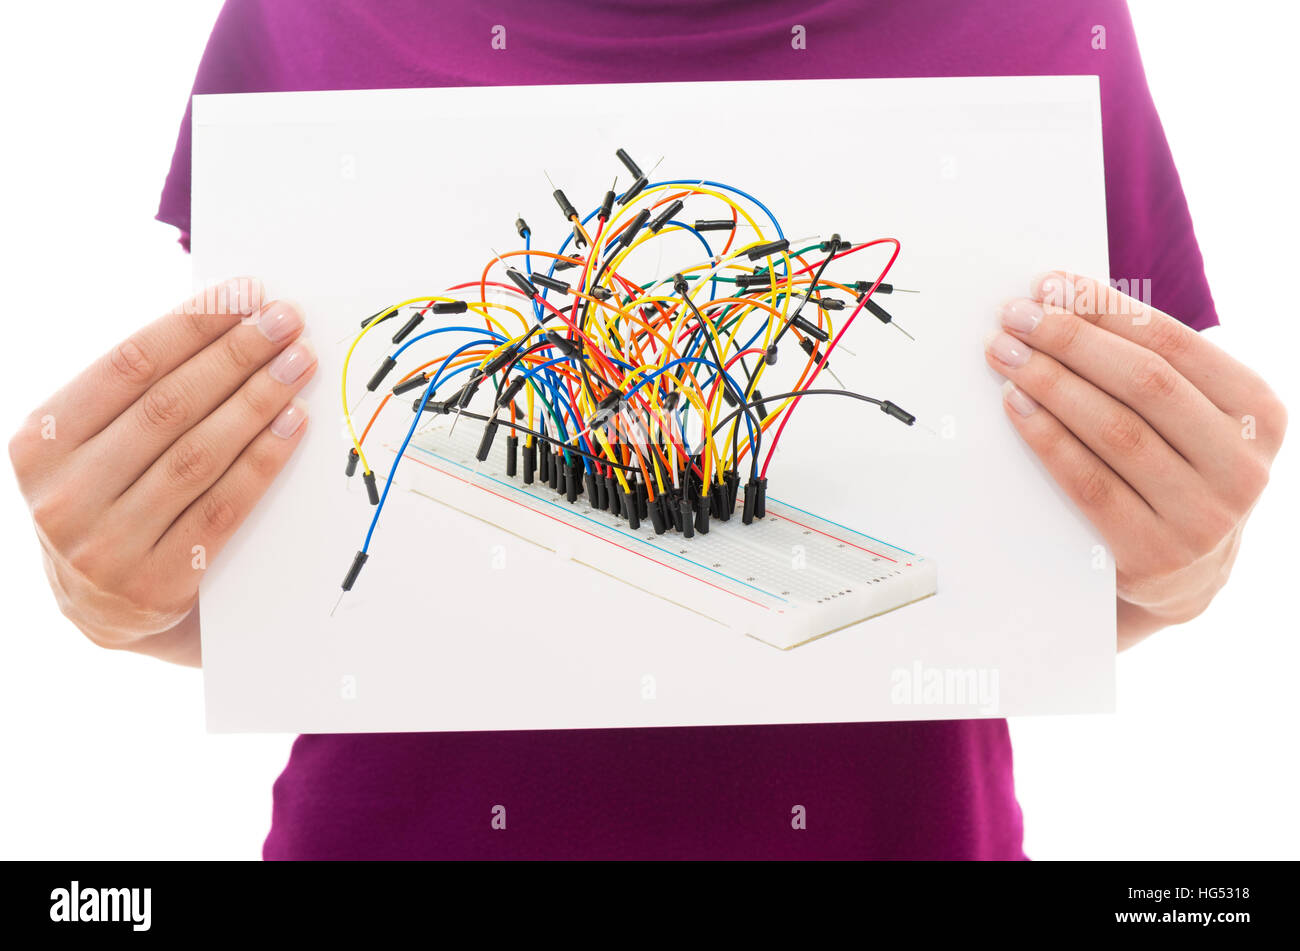 Prototyping Board Stock Photos Images Alamy Circuit Artwork Stripboard And Breadboard Layout Girl Holding White Paper Sheet With Photo Of Image